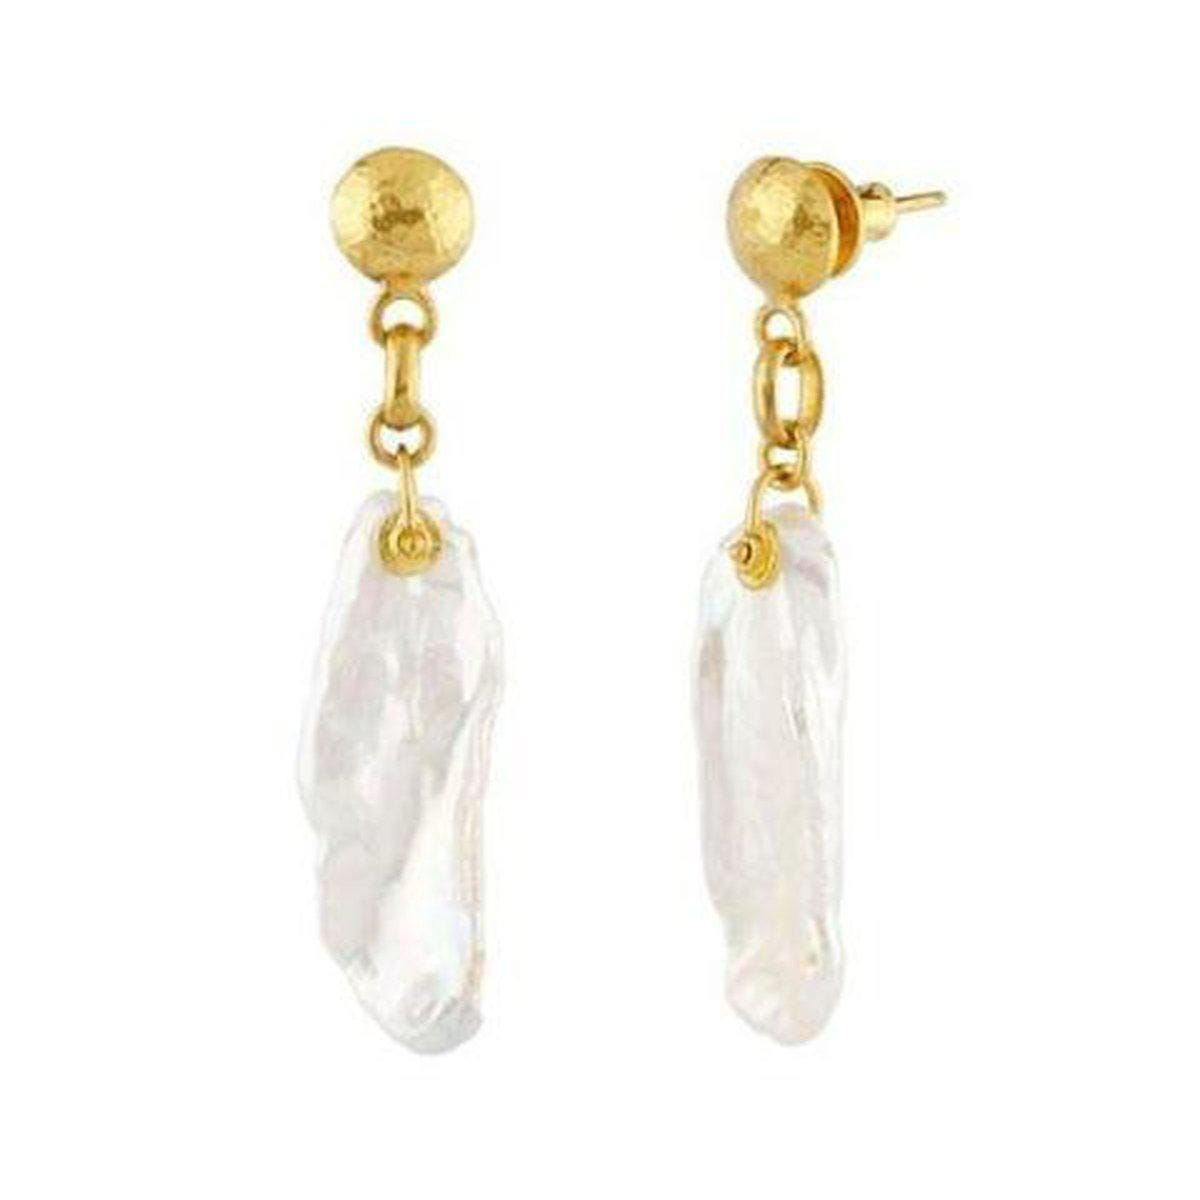 Oyster 24K Gold Pearl Earrings - LTE-1PE-PTL-GURHAN-Renee Taylor Gallery